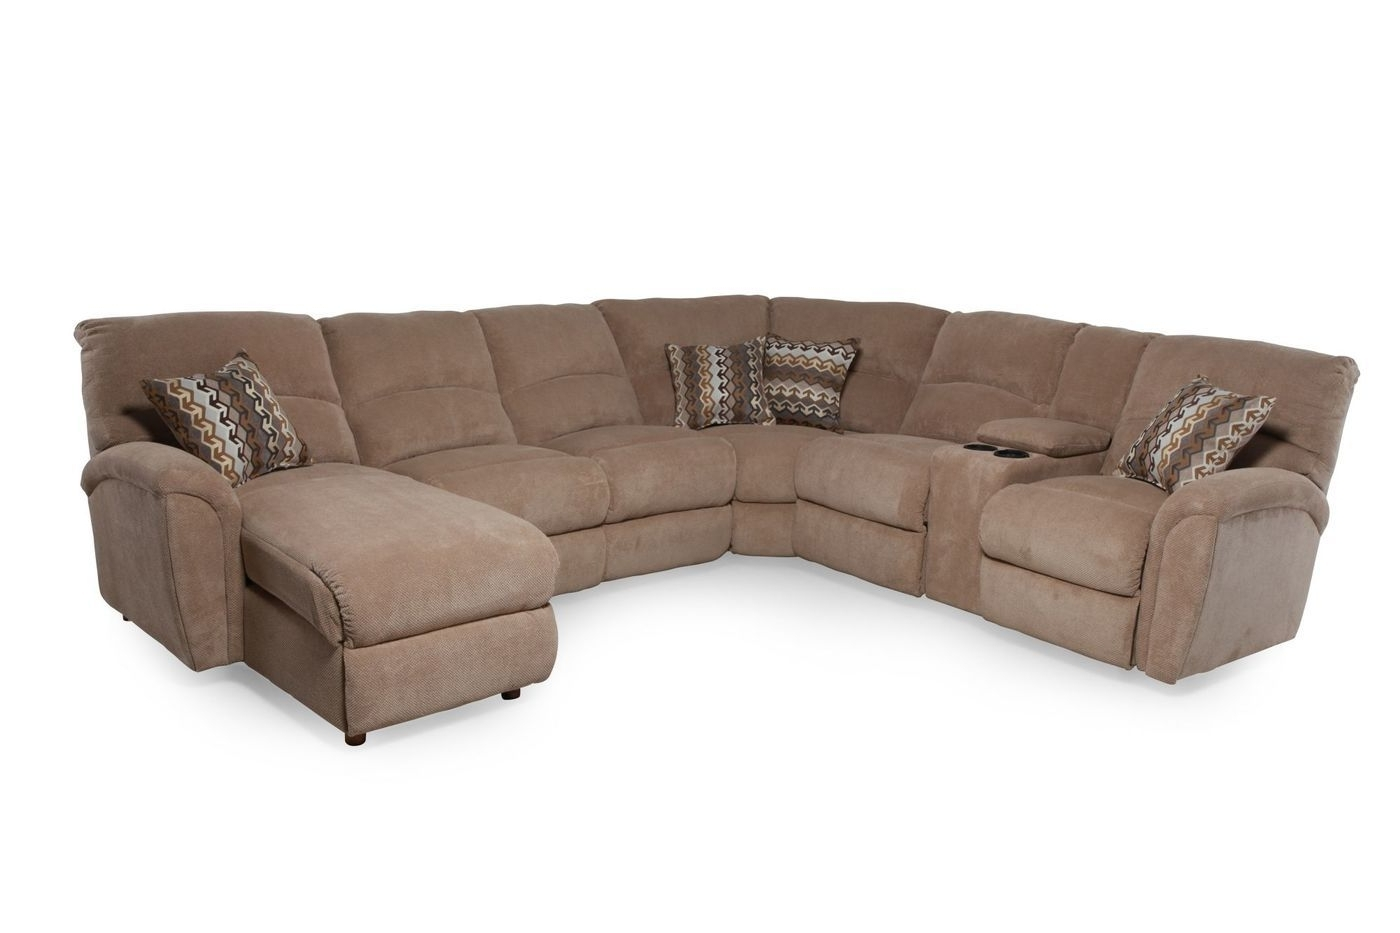 Nice Sectional Sofas Okc , Elegant Sectional Sofas Okc 60 On Sofa Throughout 2019 Okc Sectional Sofas (View 9 of 20)